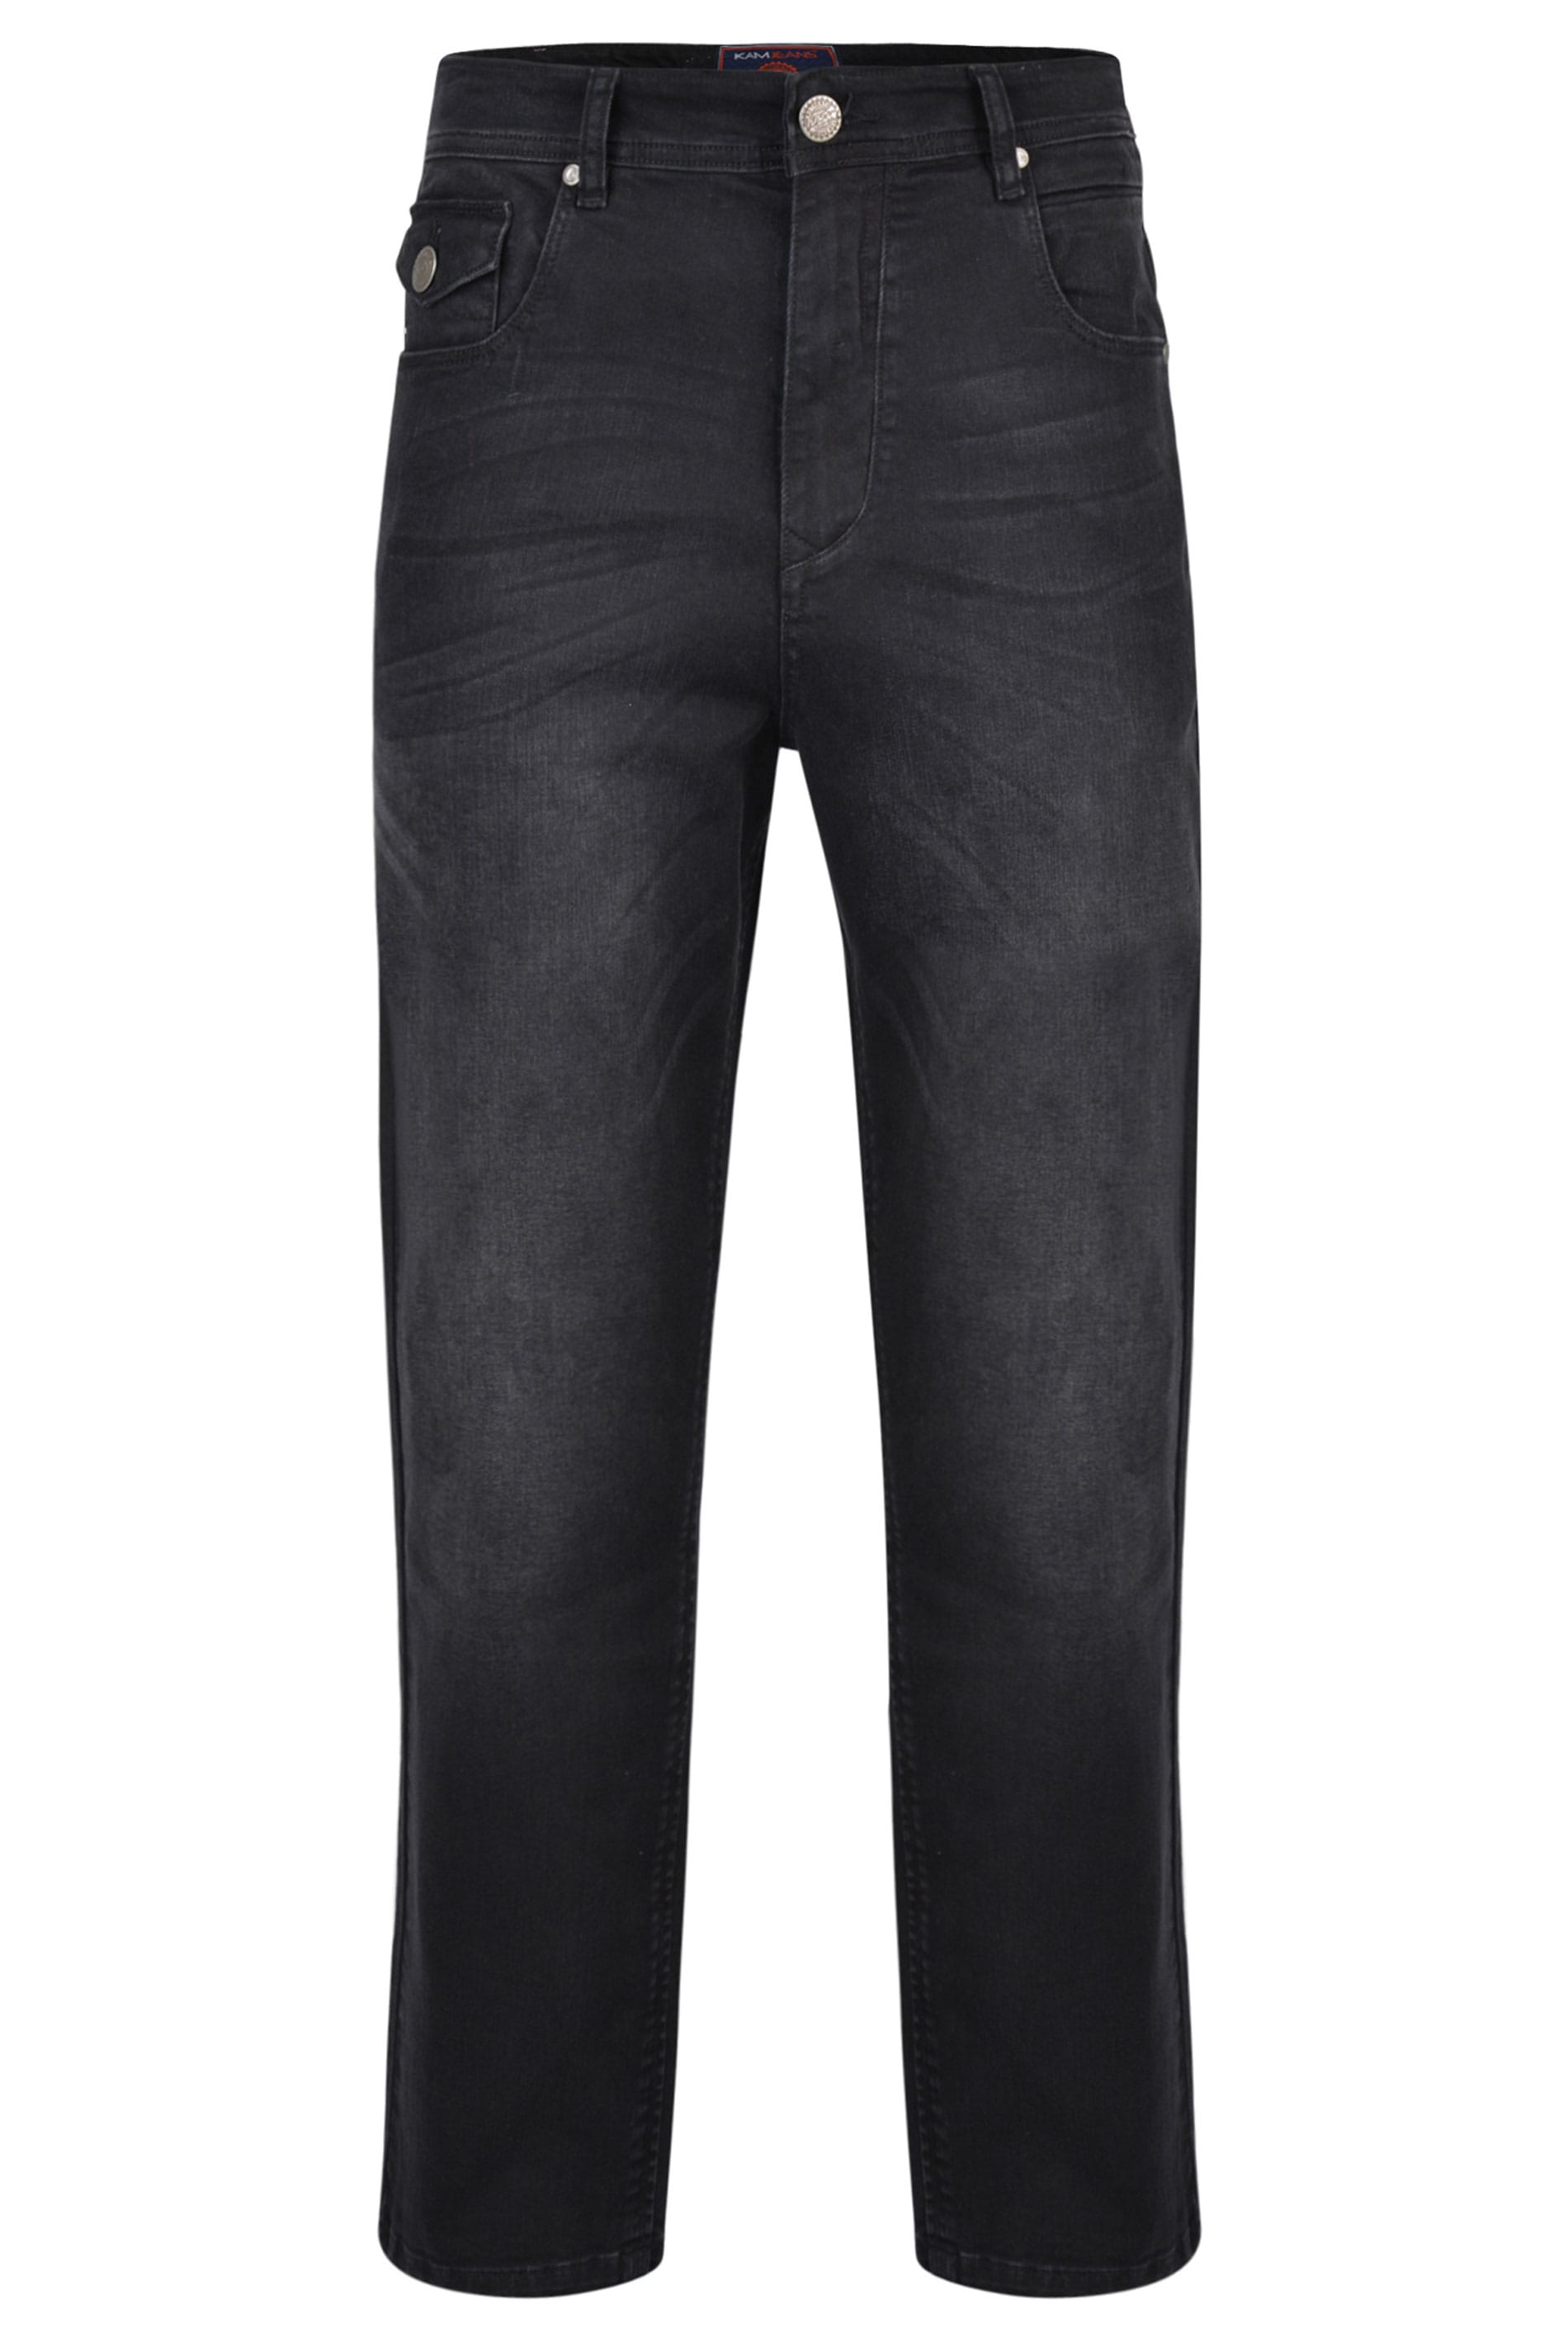 KAM Black Stretch Denim Jeans